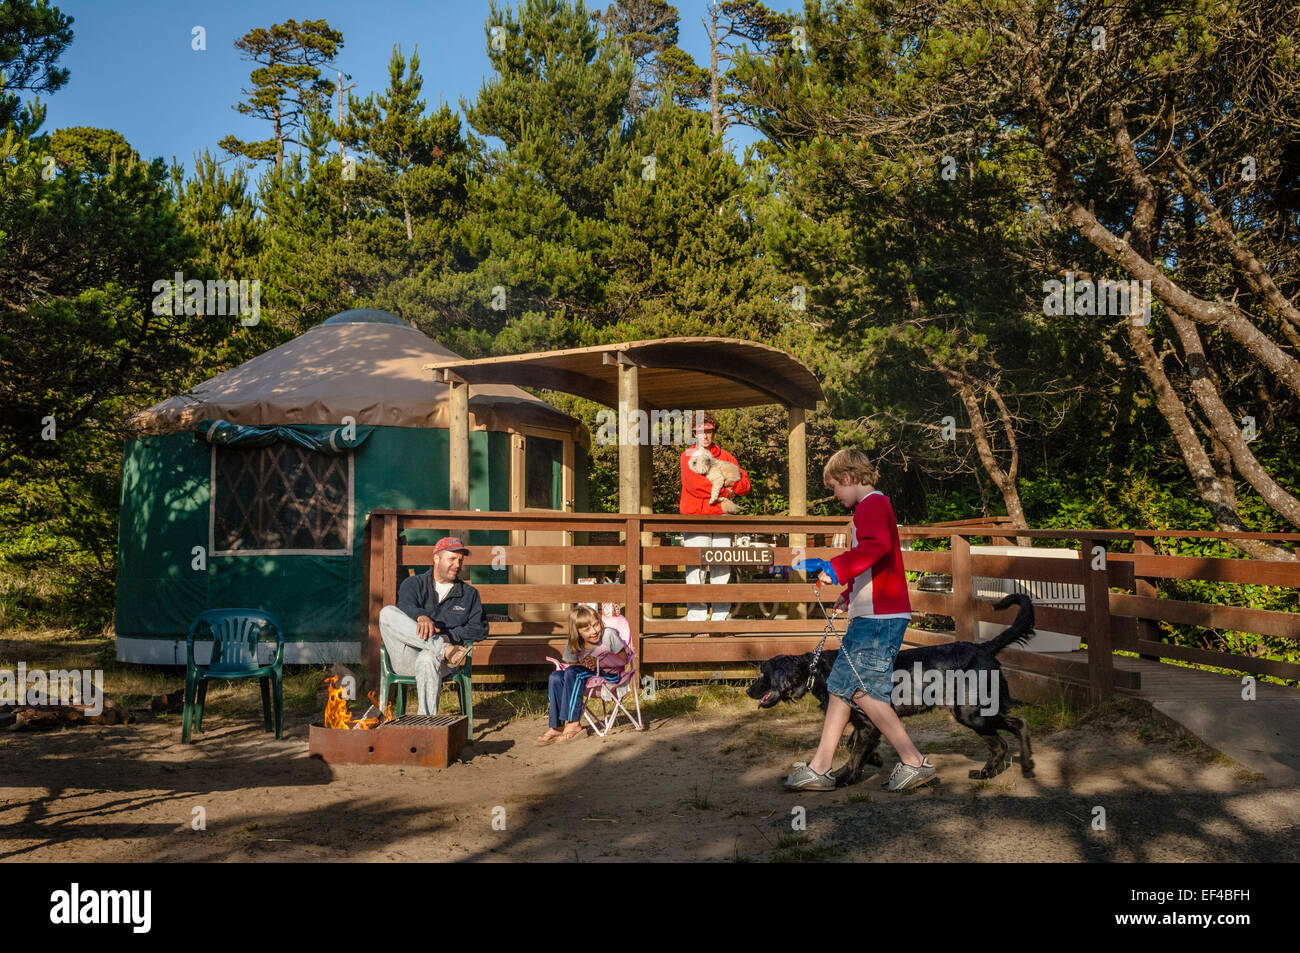 South Beach State Park Yurts